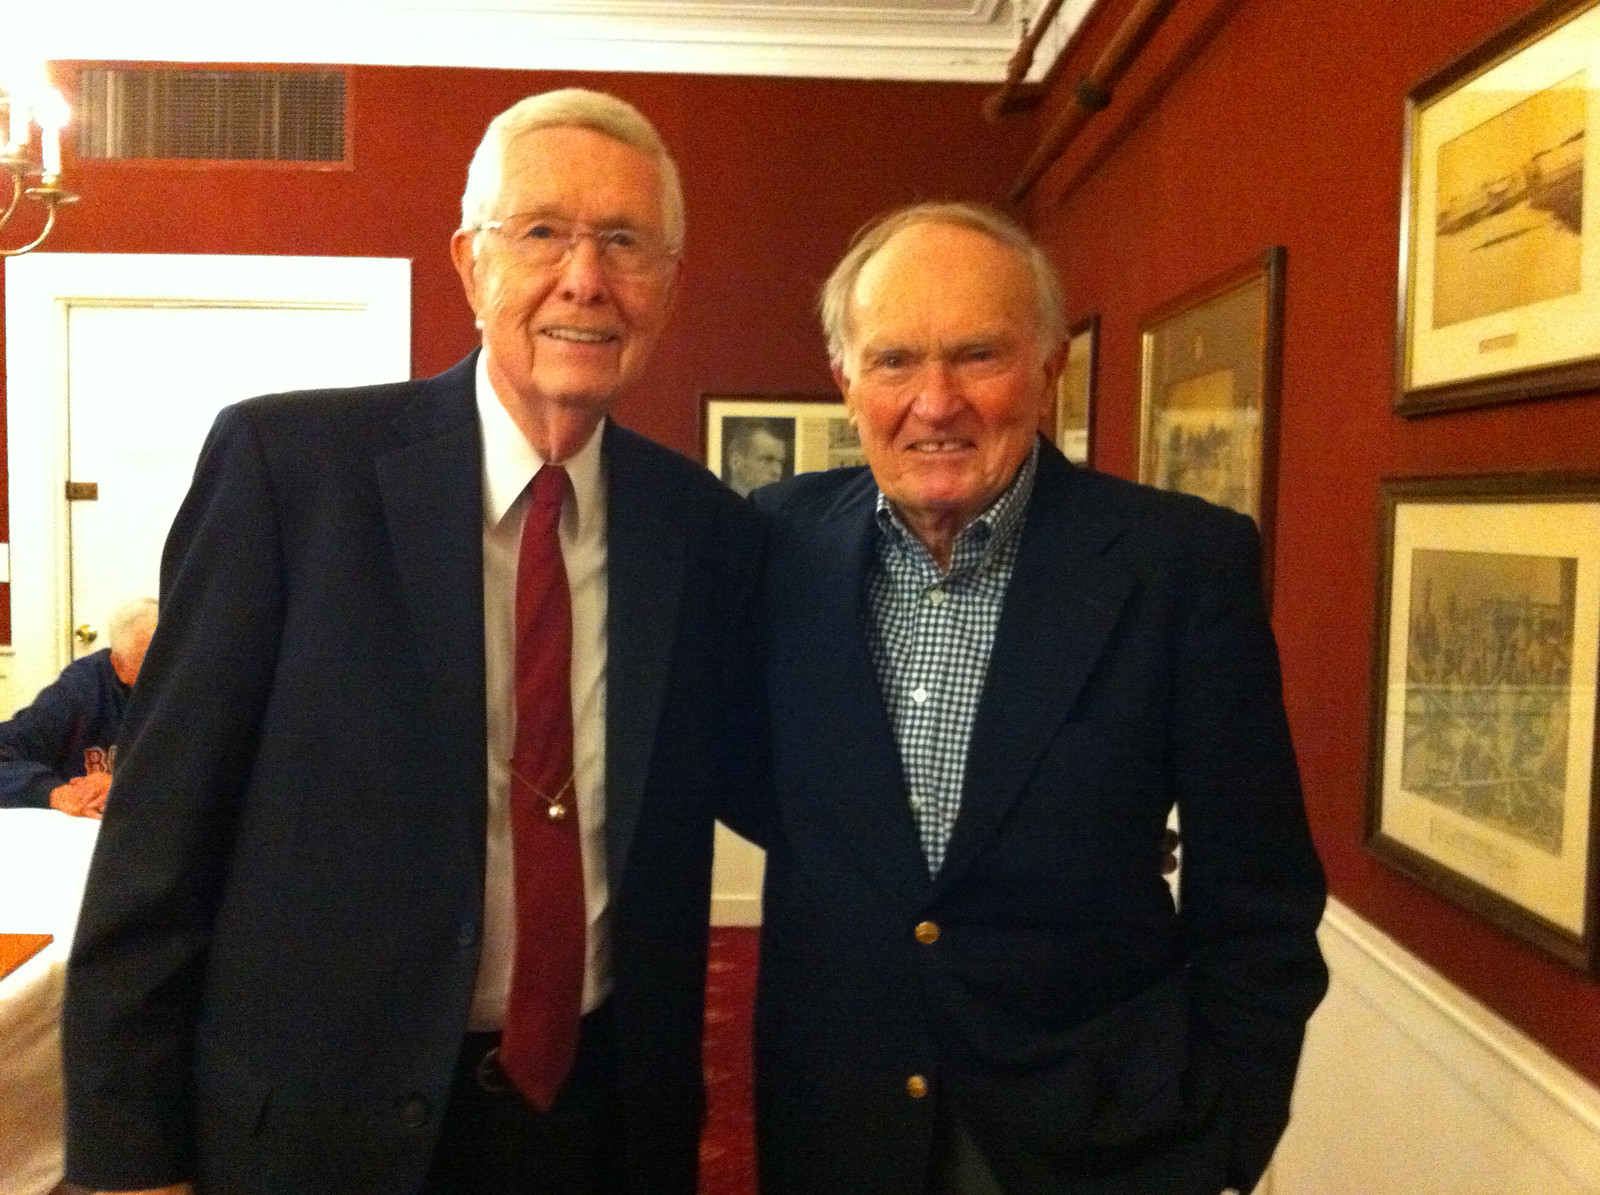 Jack Clark and Don Swegan were reunited for the first time in 66 years (1946 -2012) at the Harvard basketball banquet.